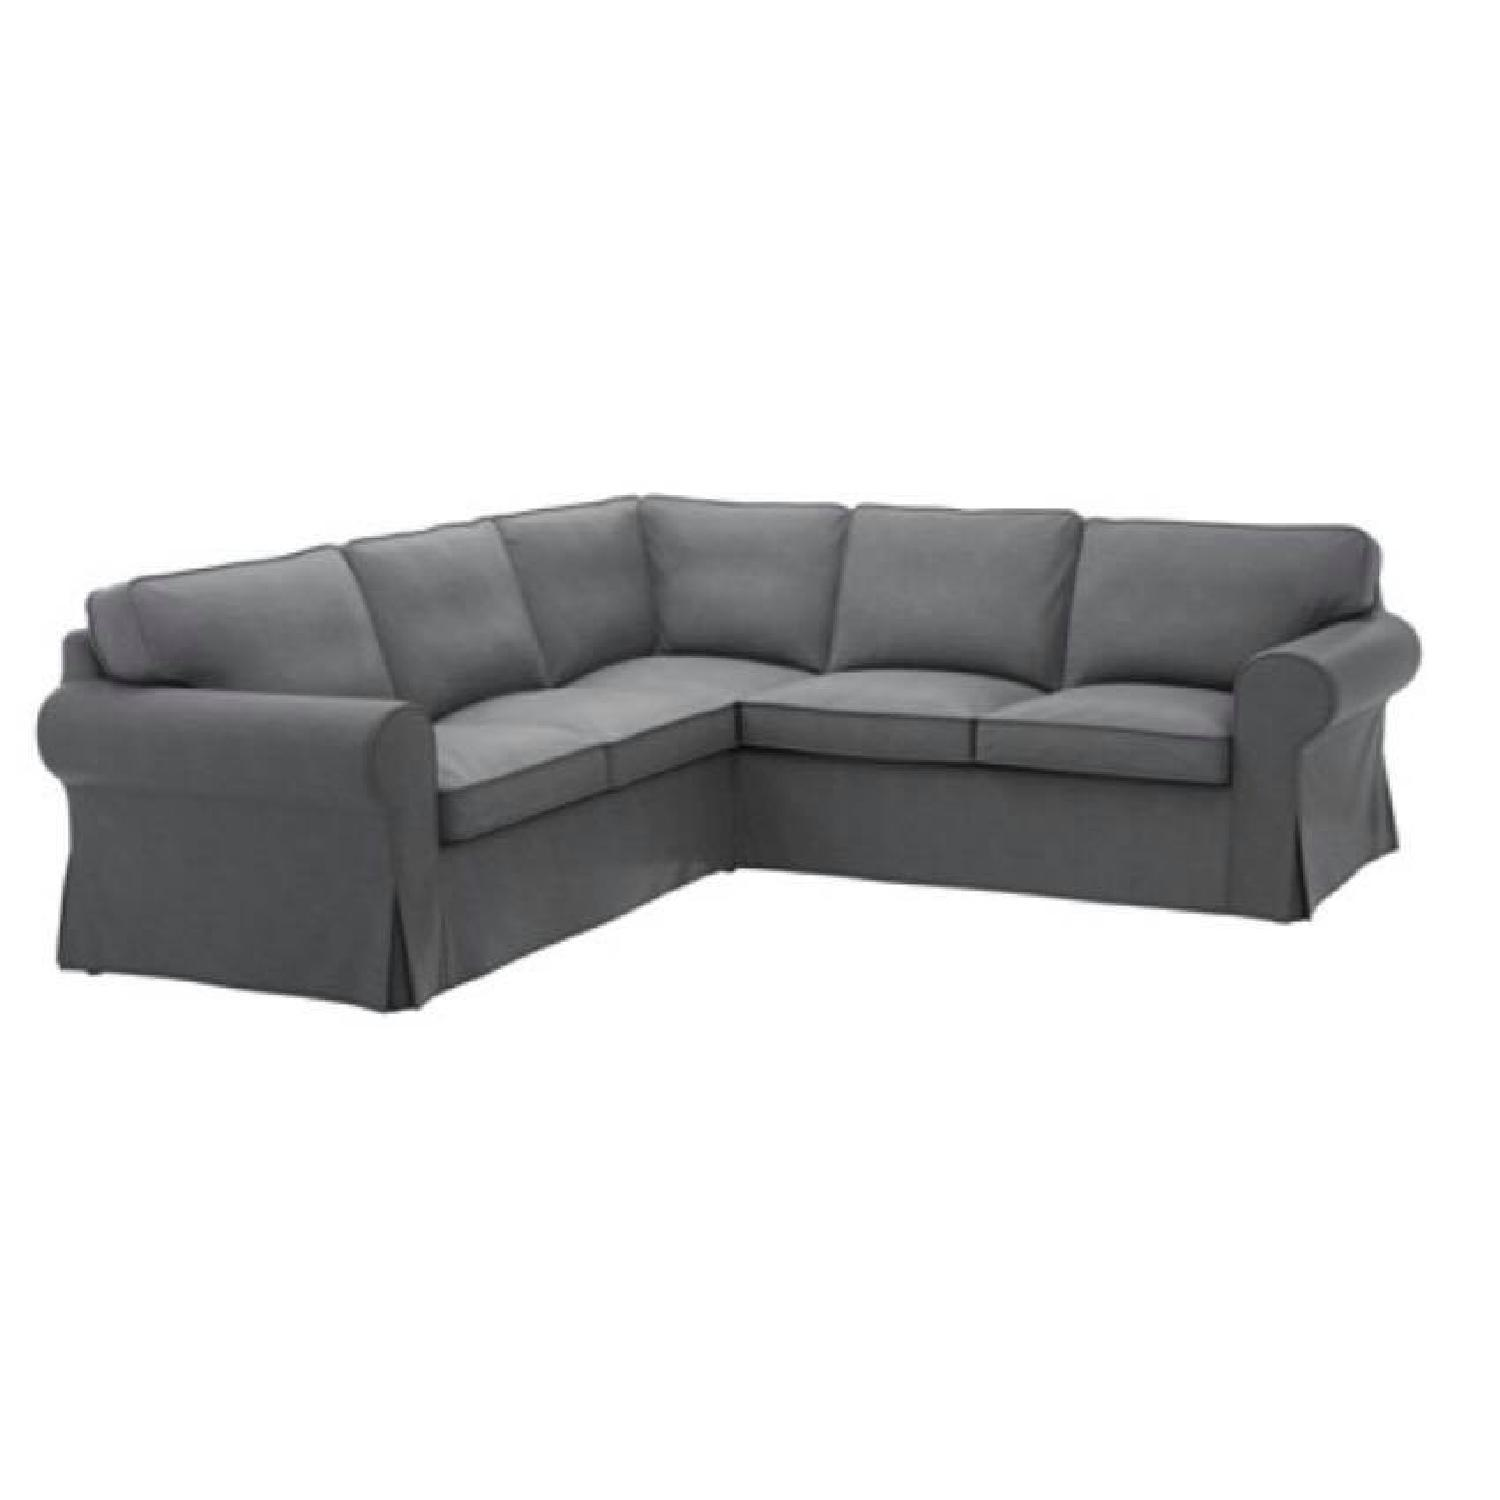 office couch ikea. Ikea Grey 5-Seat Corner Sectional Couch Office